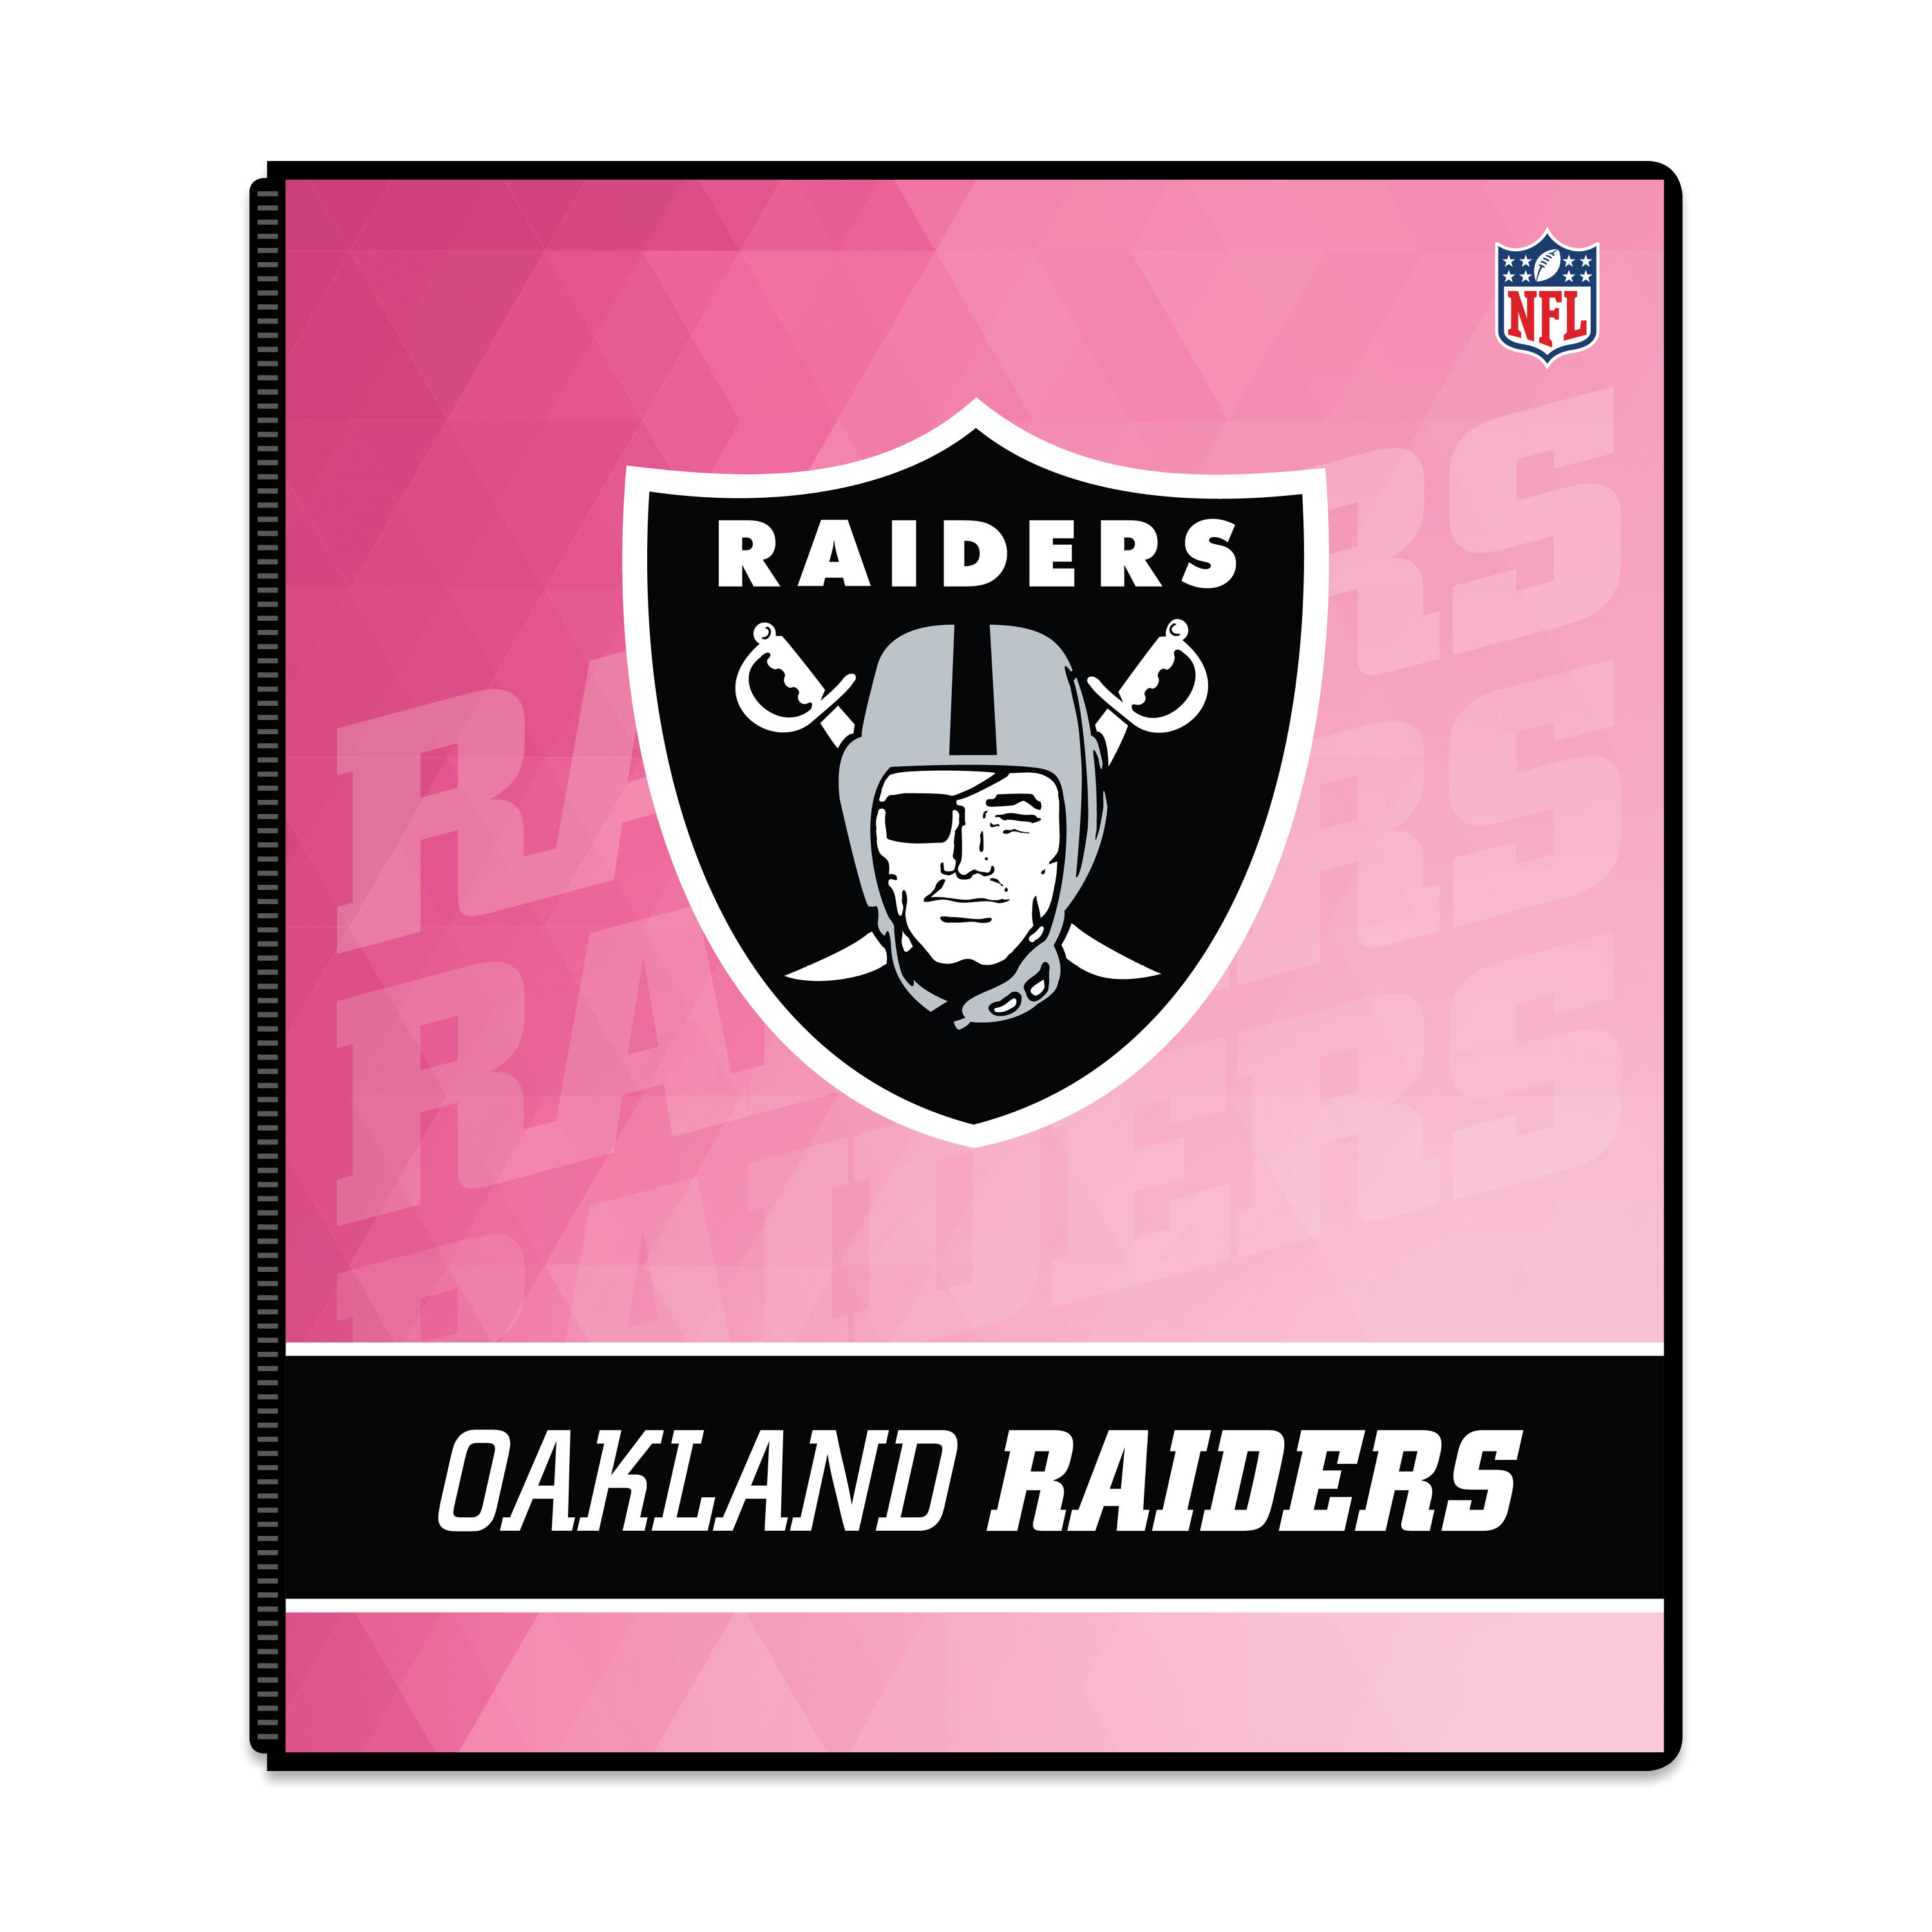 "NFL Oakland Raiders 3 Ring Binder, 175 Sheet Capacity, 1"" Metal Rings"